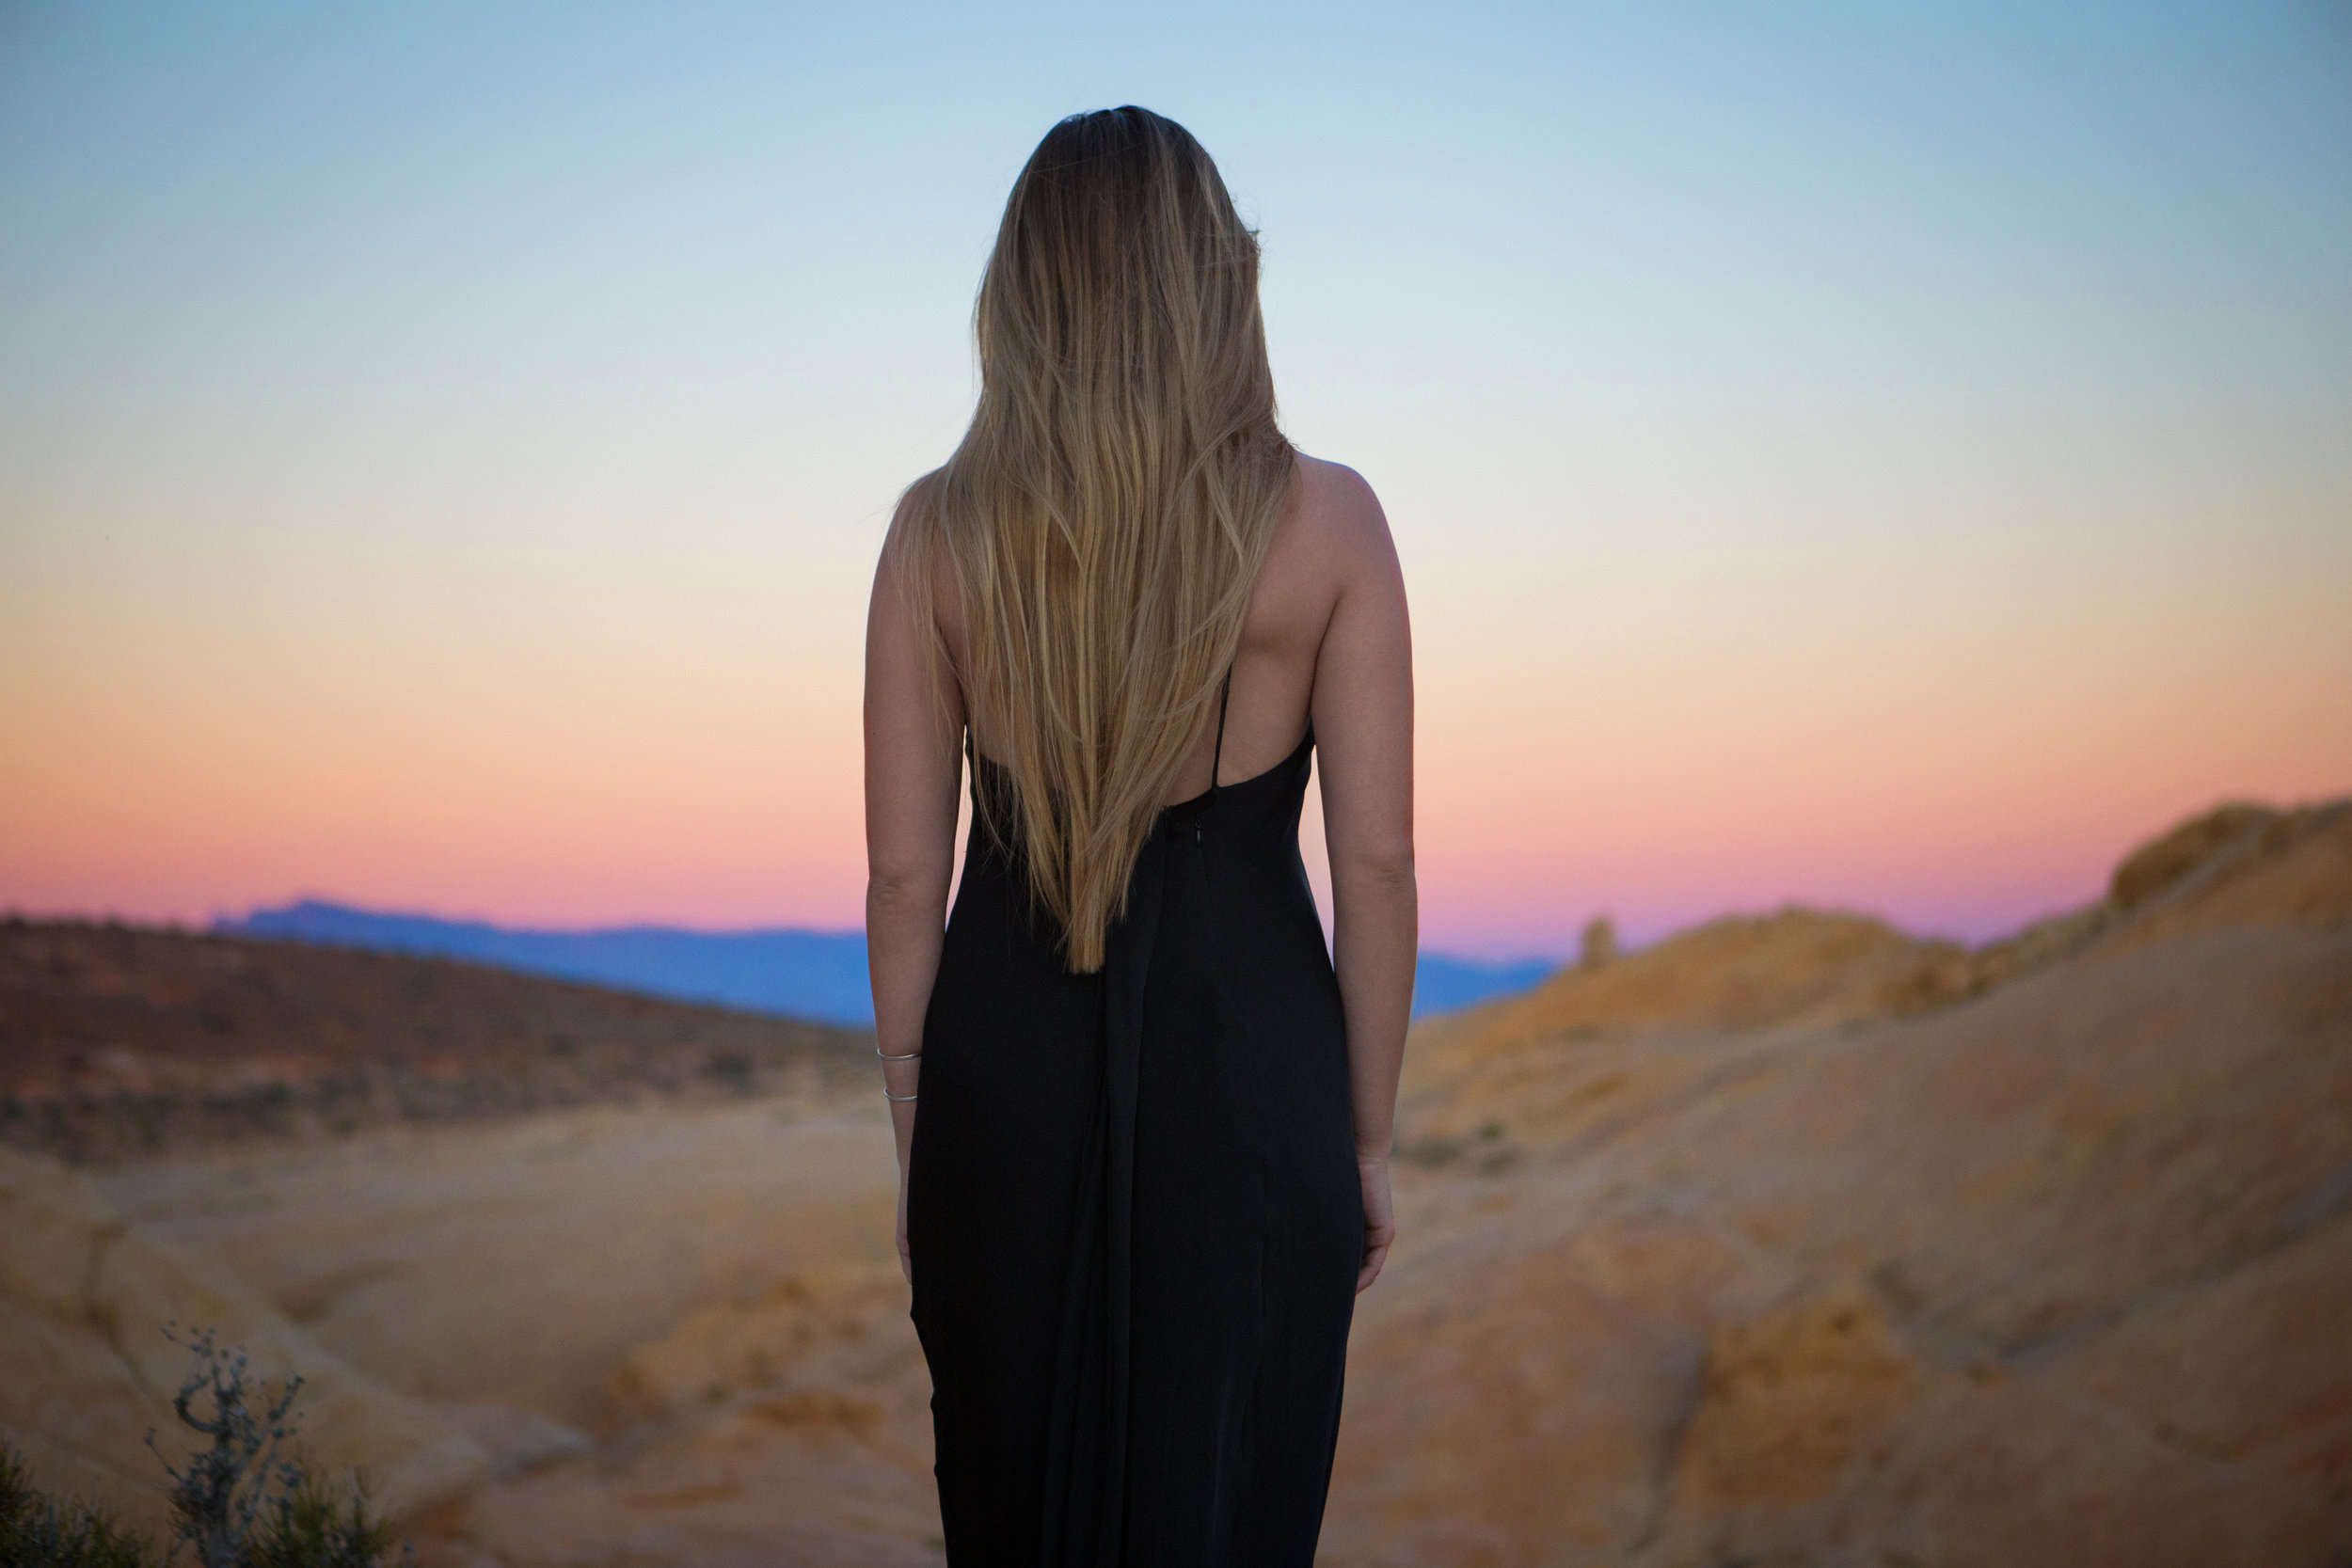 AstroBandit_JordanRose_ValleyofFire_GoldenHour_Fashion_LeonMax_Sunset_14.jpg